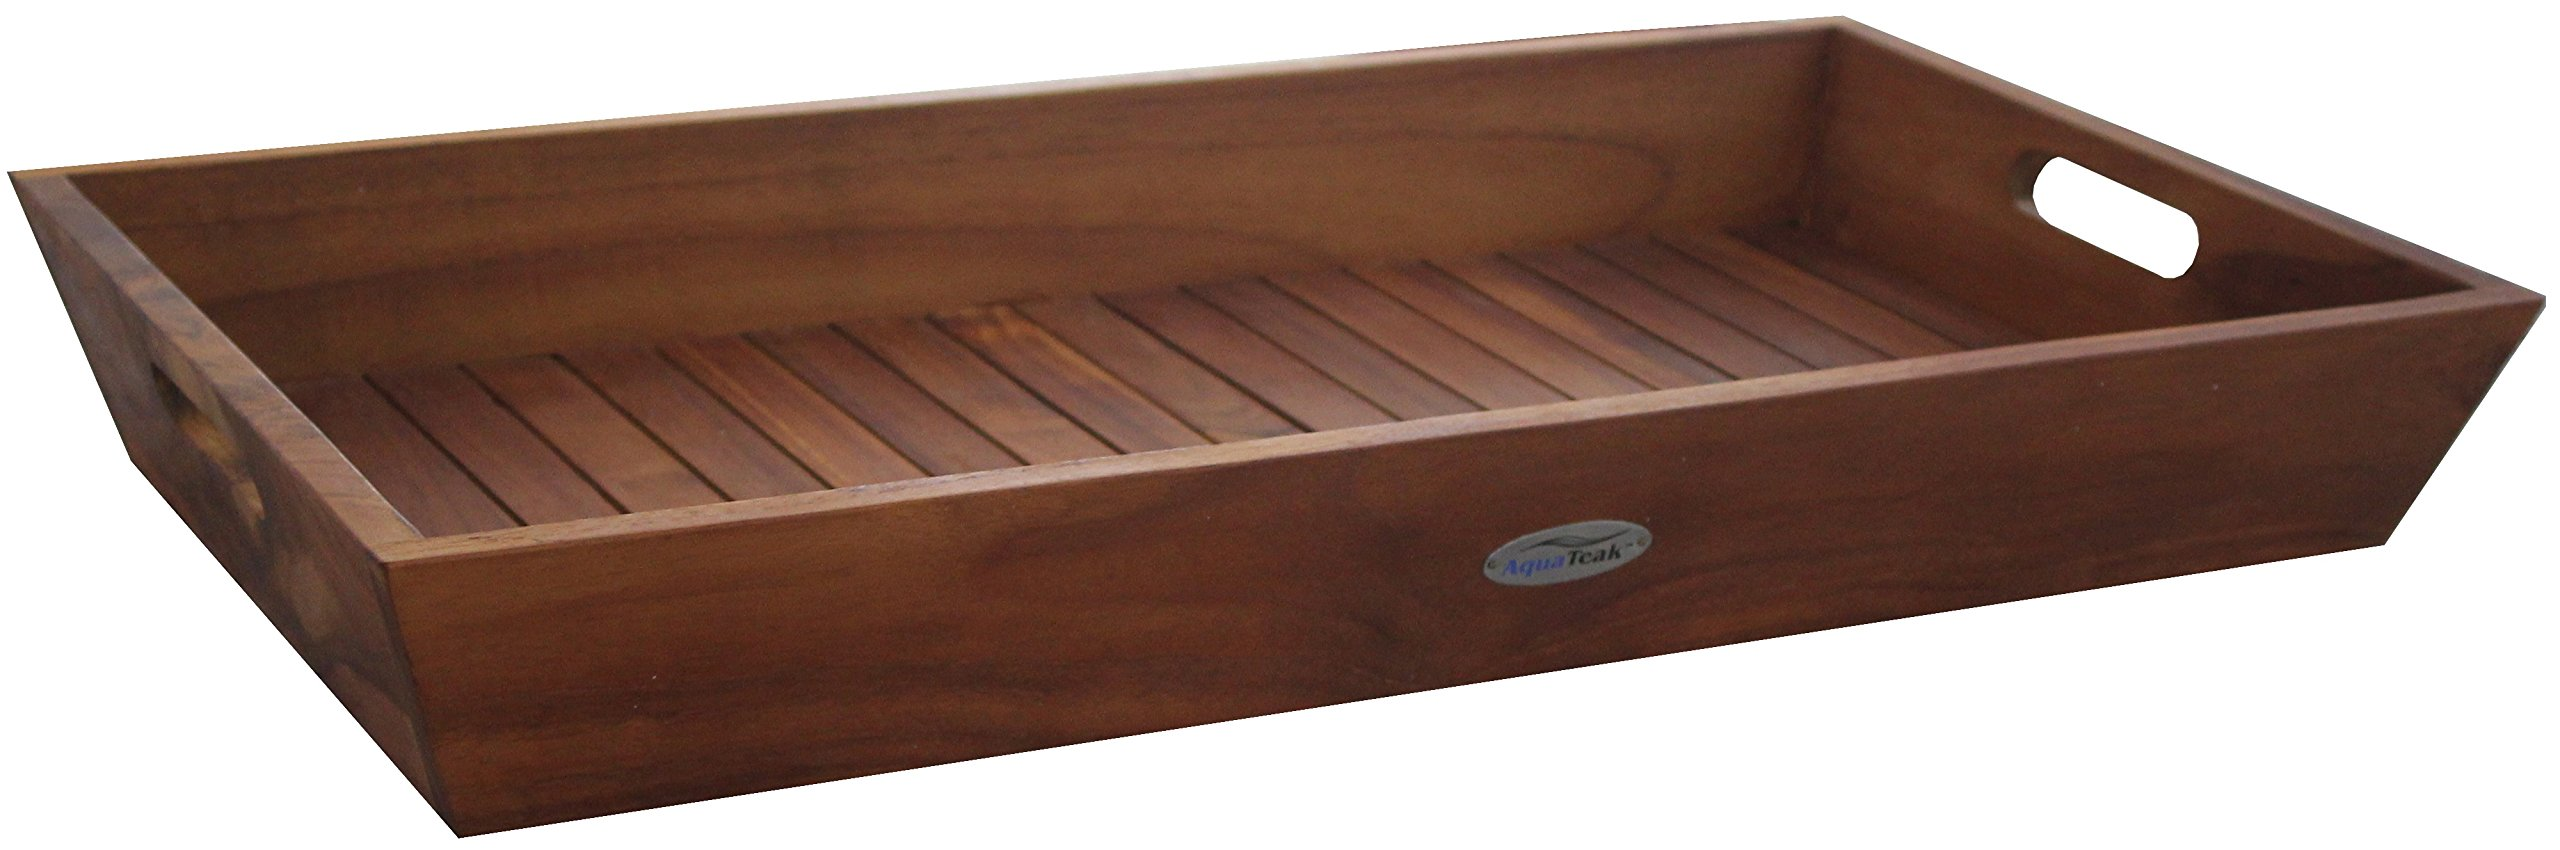 The Original Large Solid Teak Amenities Serving Tray Caddy with Handles, Indoor or Outdoor